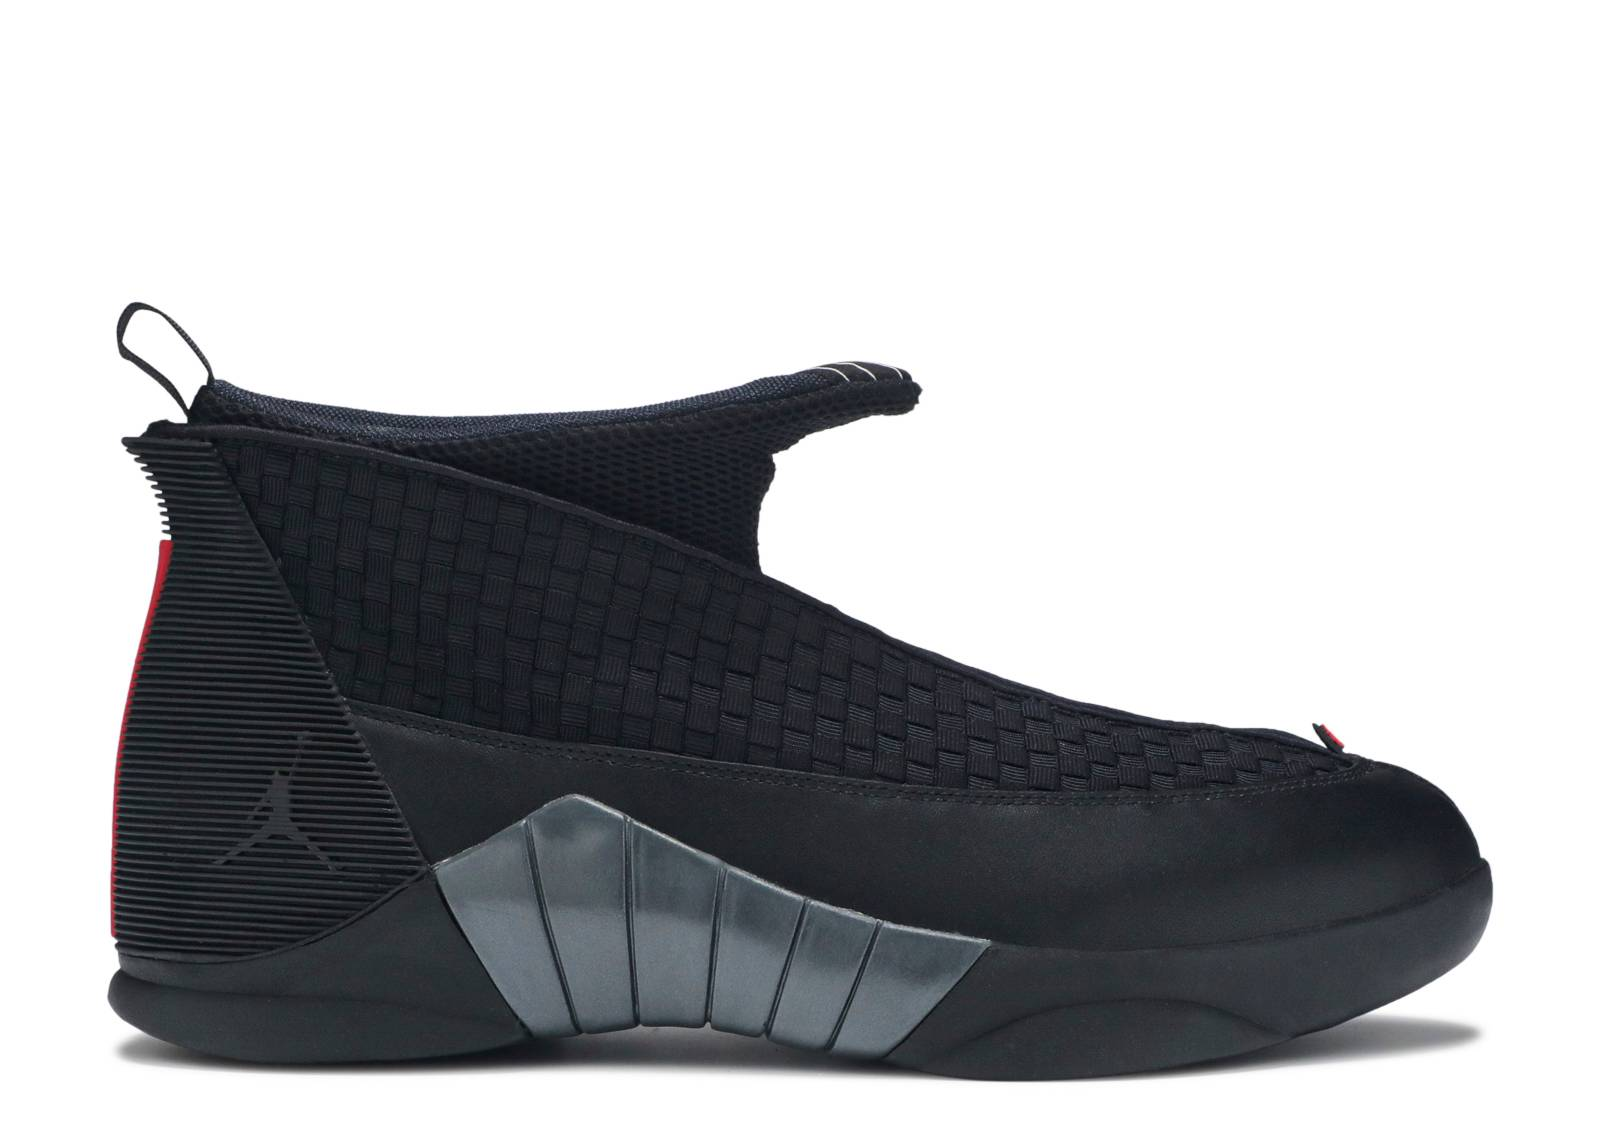 b40c29d9d1b Air Jordan 15 (XV) Shoes - Nike | Flight Club